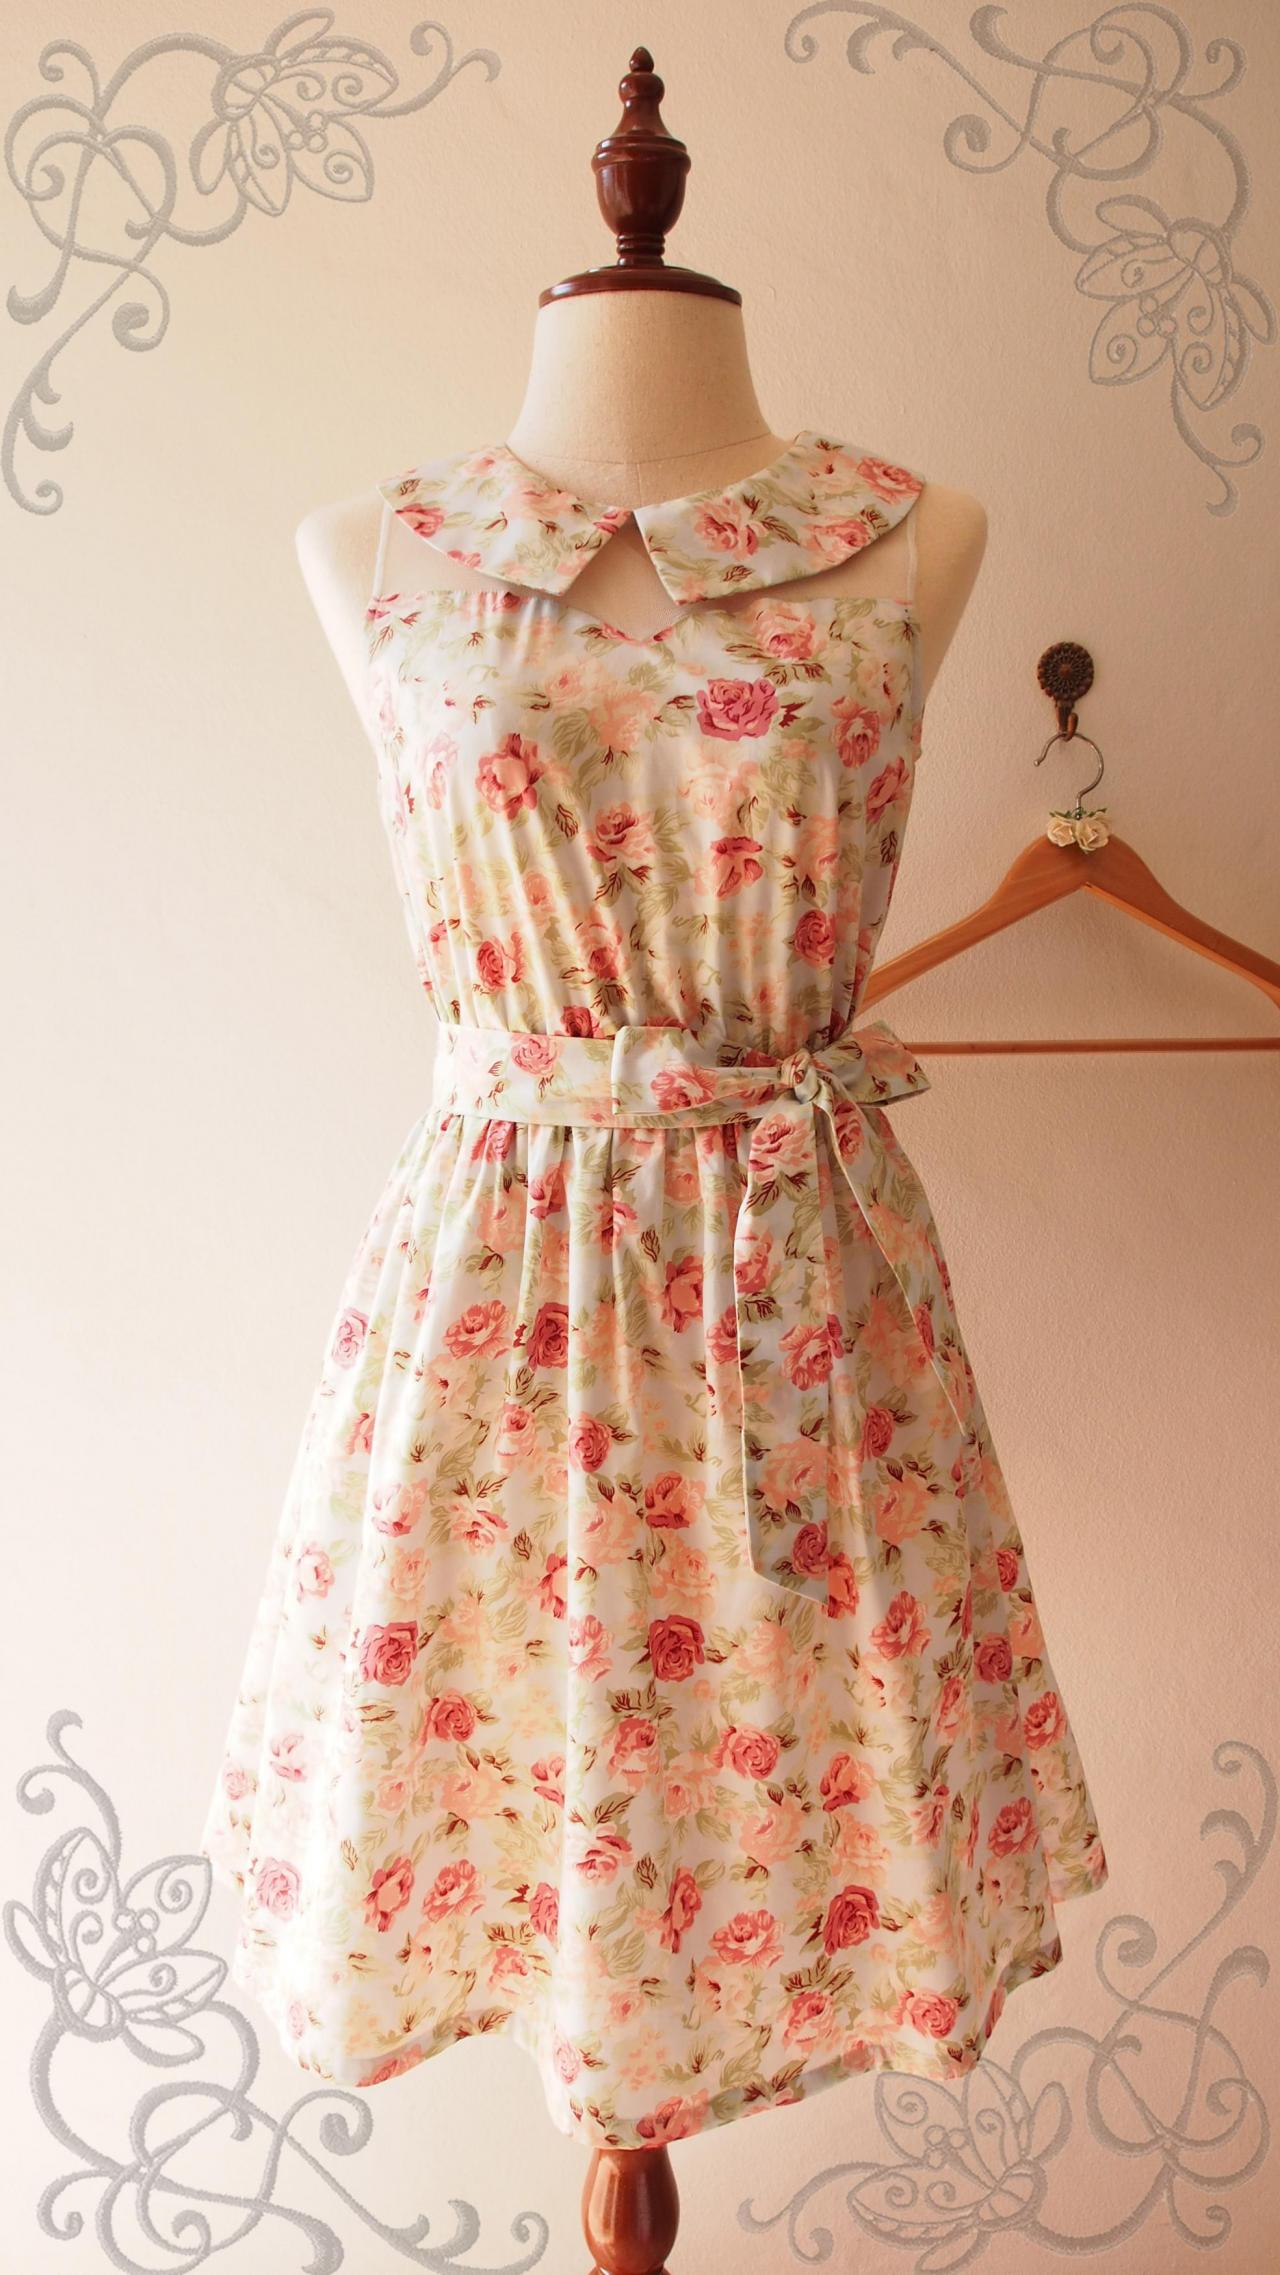 Collar Dress Blue with Coral Floral Vintage Inspired Rustic Wedding Bridesmaid Peter Pan Collar Tea Party Summer Midi Dress -XS-XL